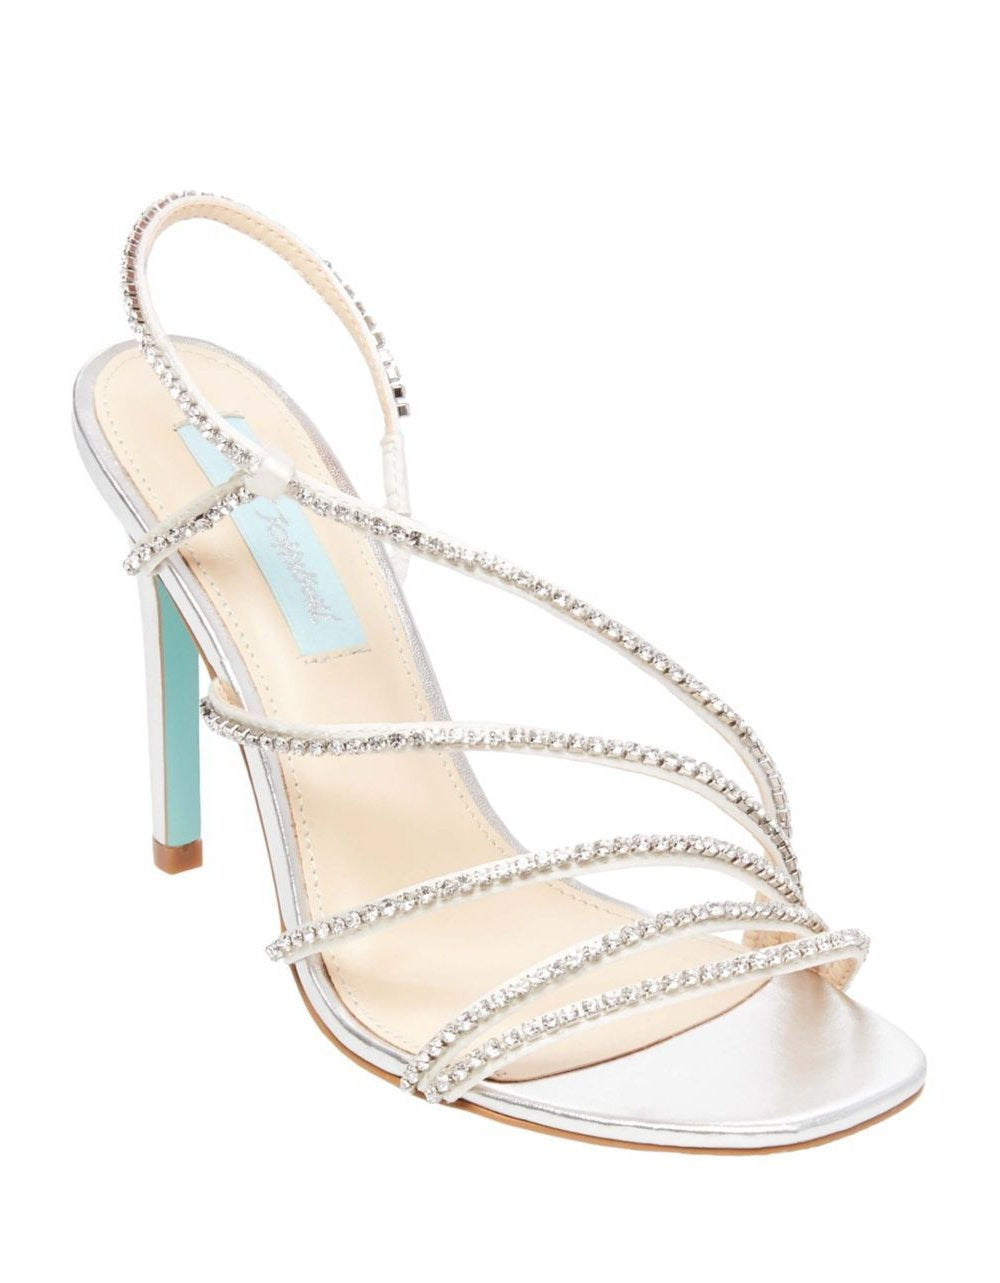 SB-ACES SILVER METALLIC - SHOES - Betsey Johnson